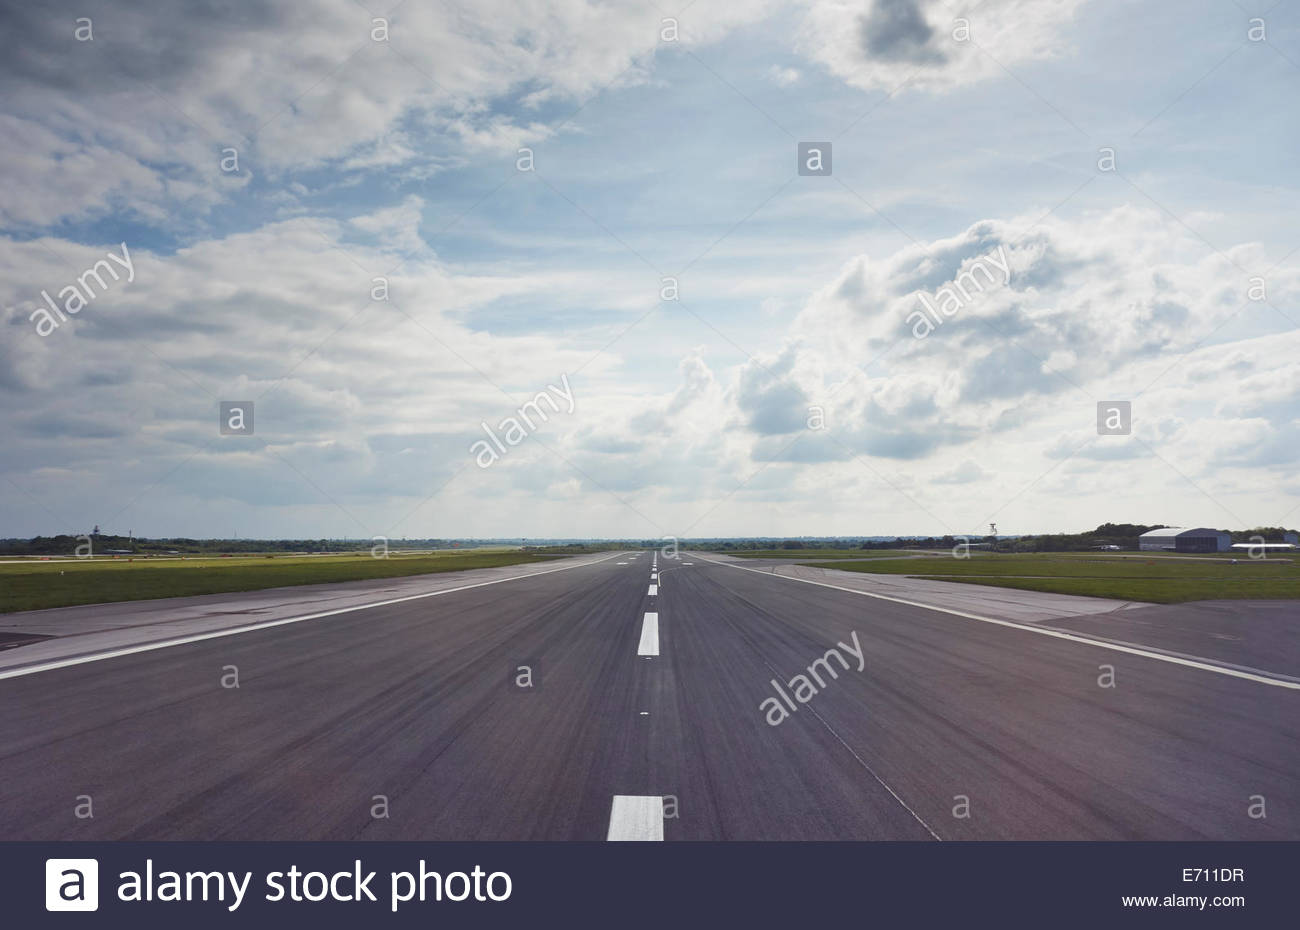 Wide angled central view of airport runway - Stock Image